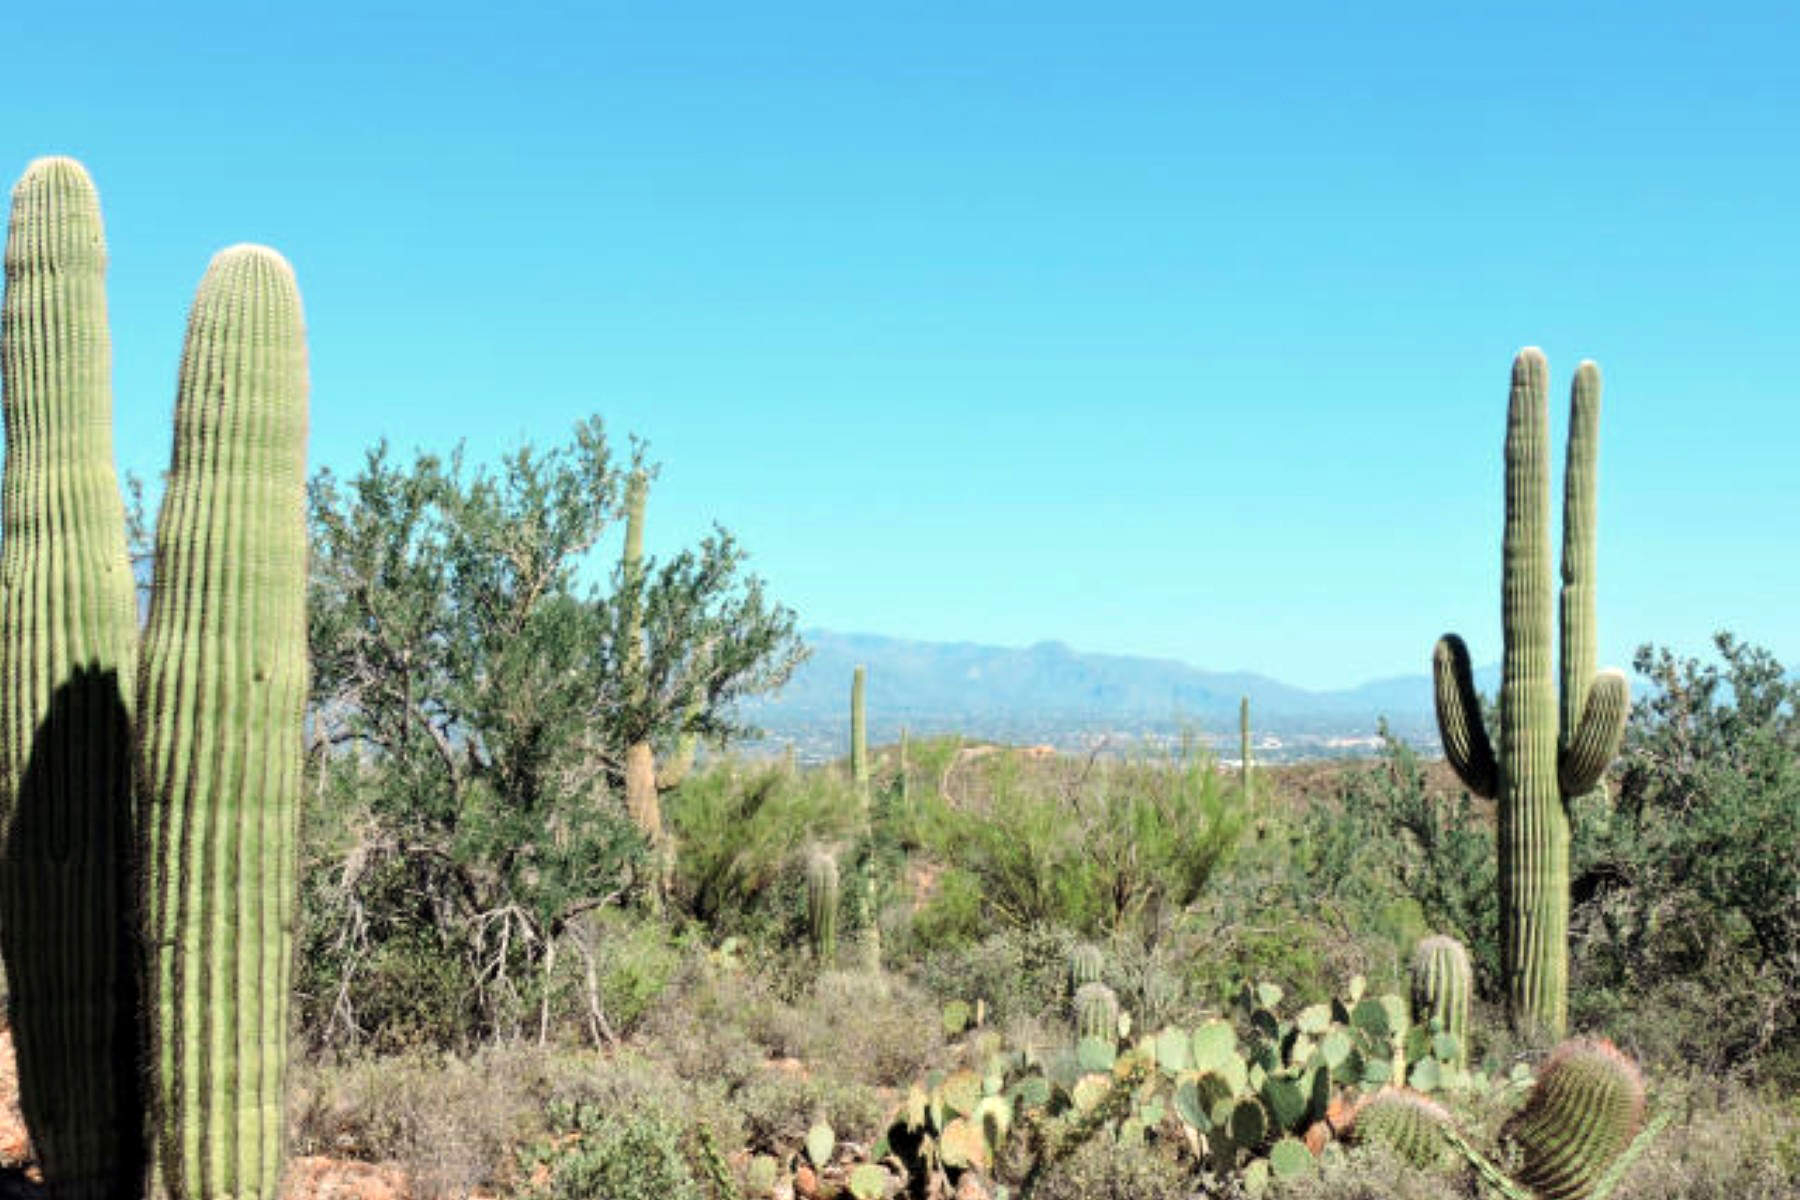 Terreno por un Venta en Amazing Homesite With Breathtaking Panoramic Views 3970 N Avenida Dos Vistas Tucson, Arizona 85745 Estados Unidos